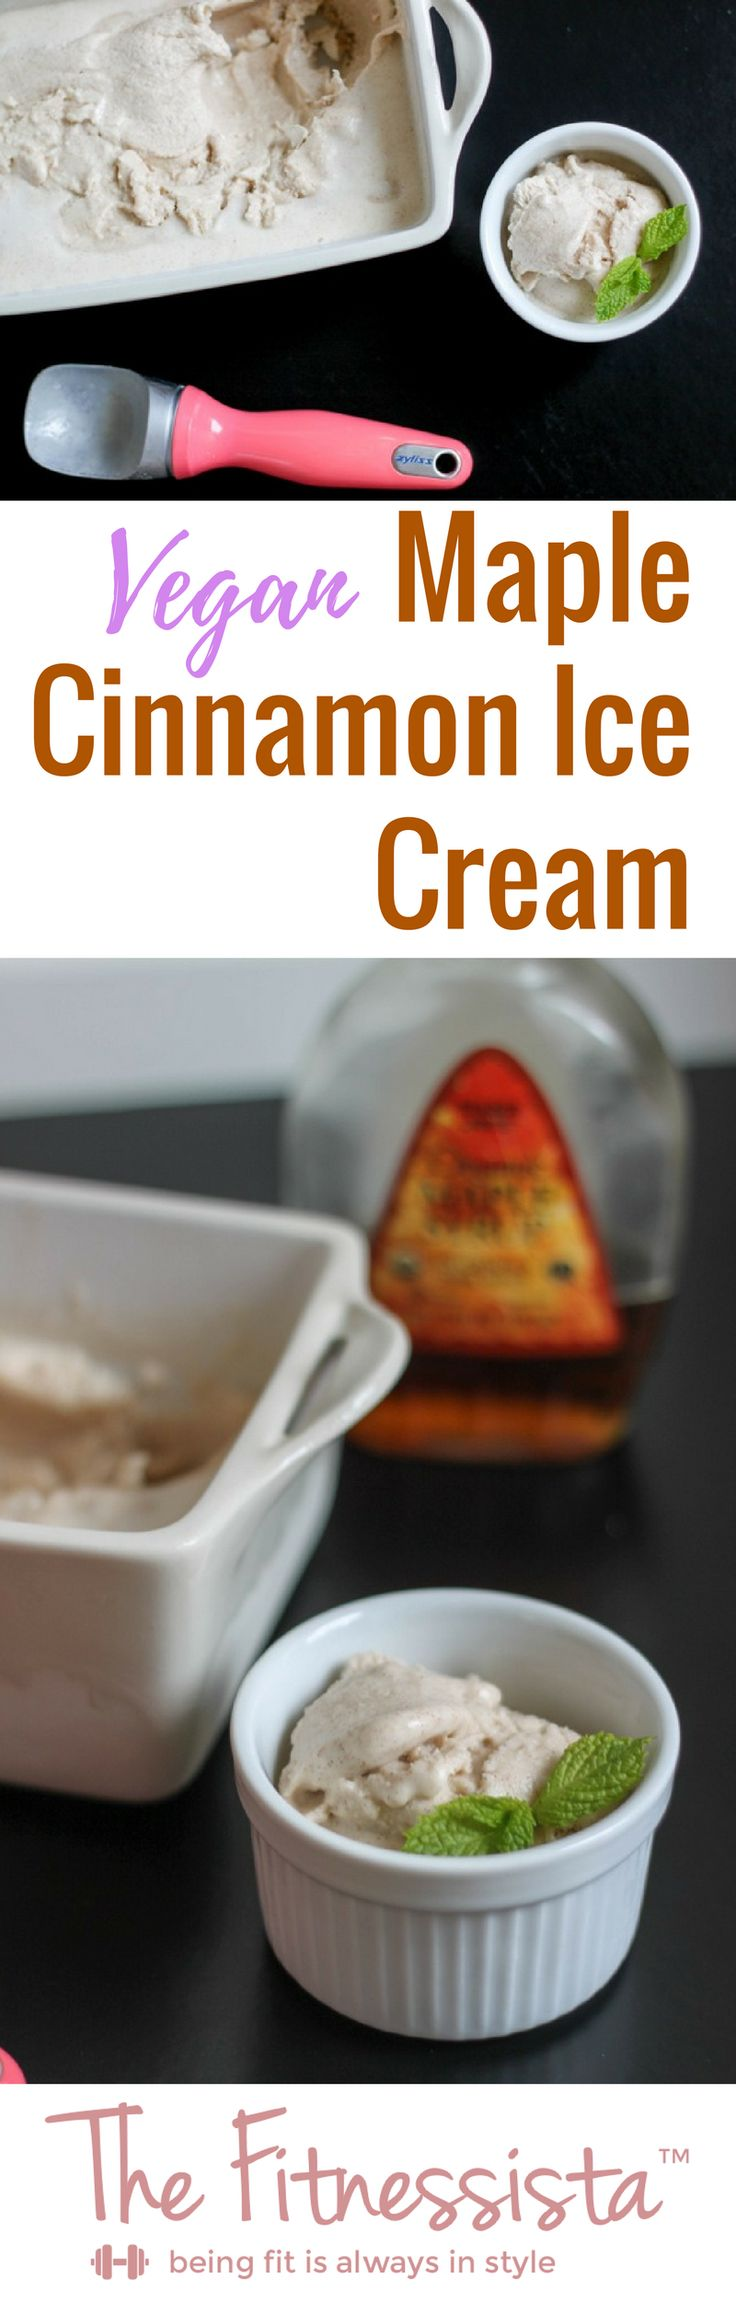 This vegan ice cream uses coconut milk for a deliciously creamy texture, along with soaked cashews and pure maple syrup for sweetness. fitnessista.com #veganicecream #coconutmilkicecream